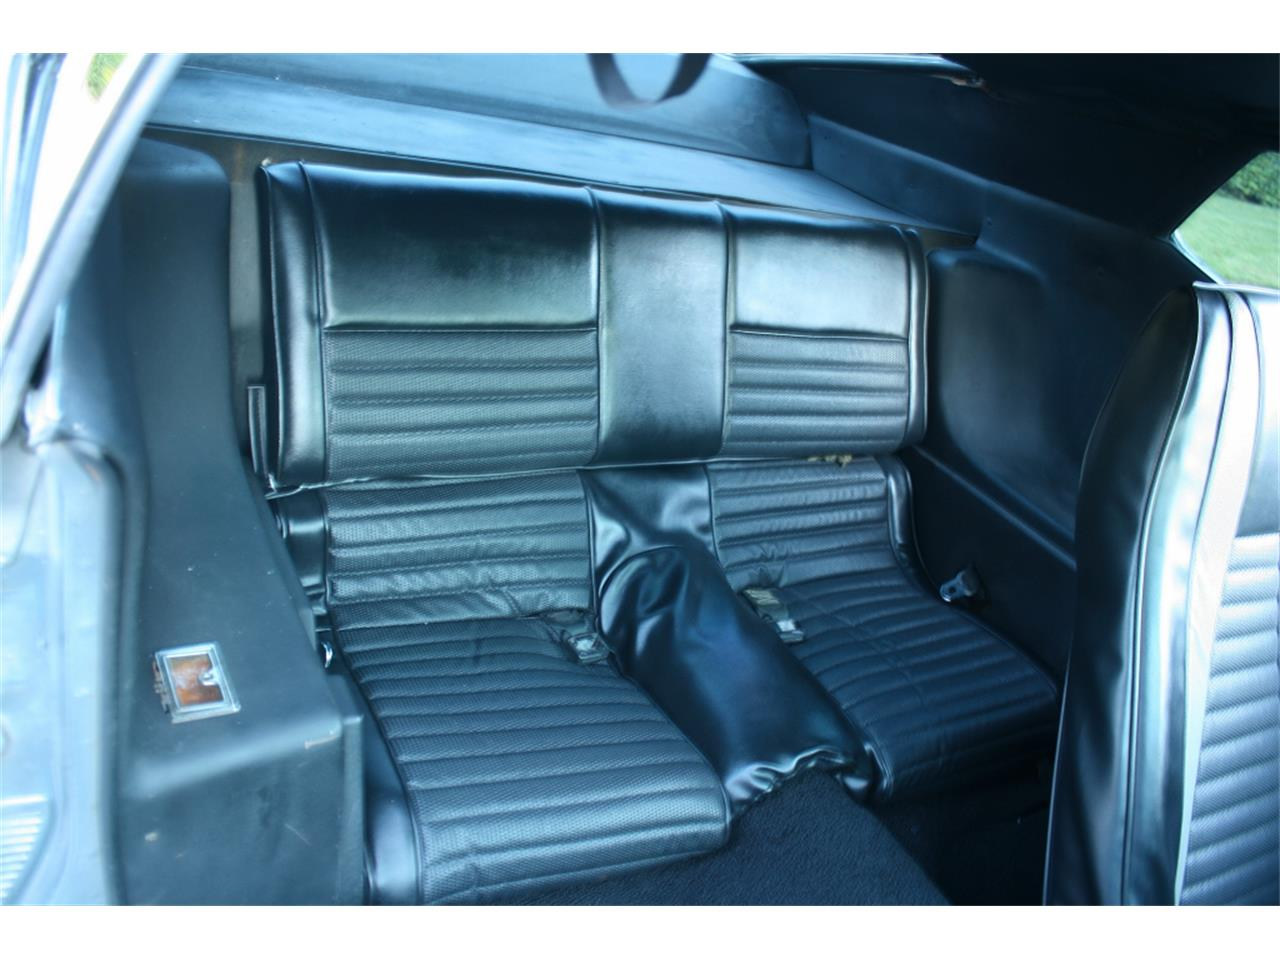 Large Picture of 1973 Ford Mustang - $17,500.00 Offered by MJC Classic Cars - MA11